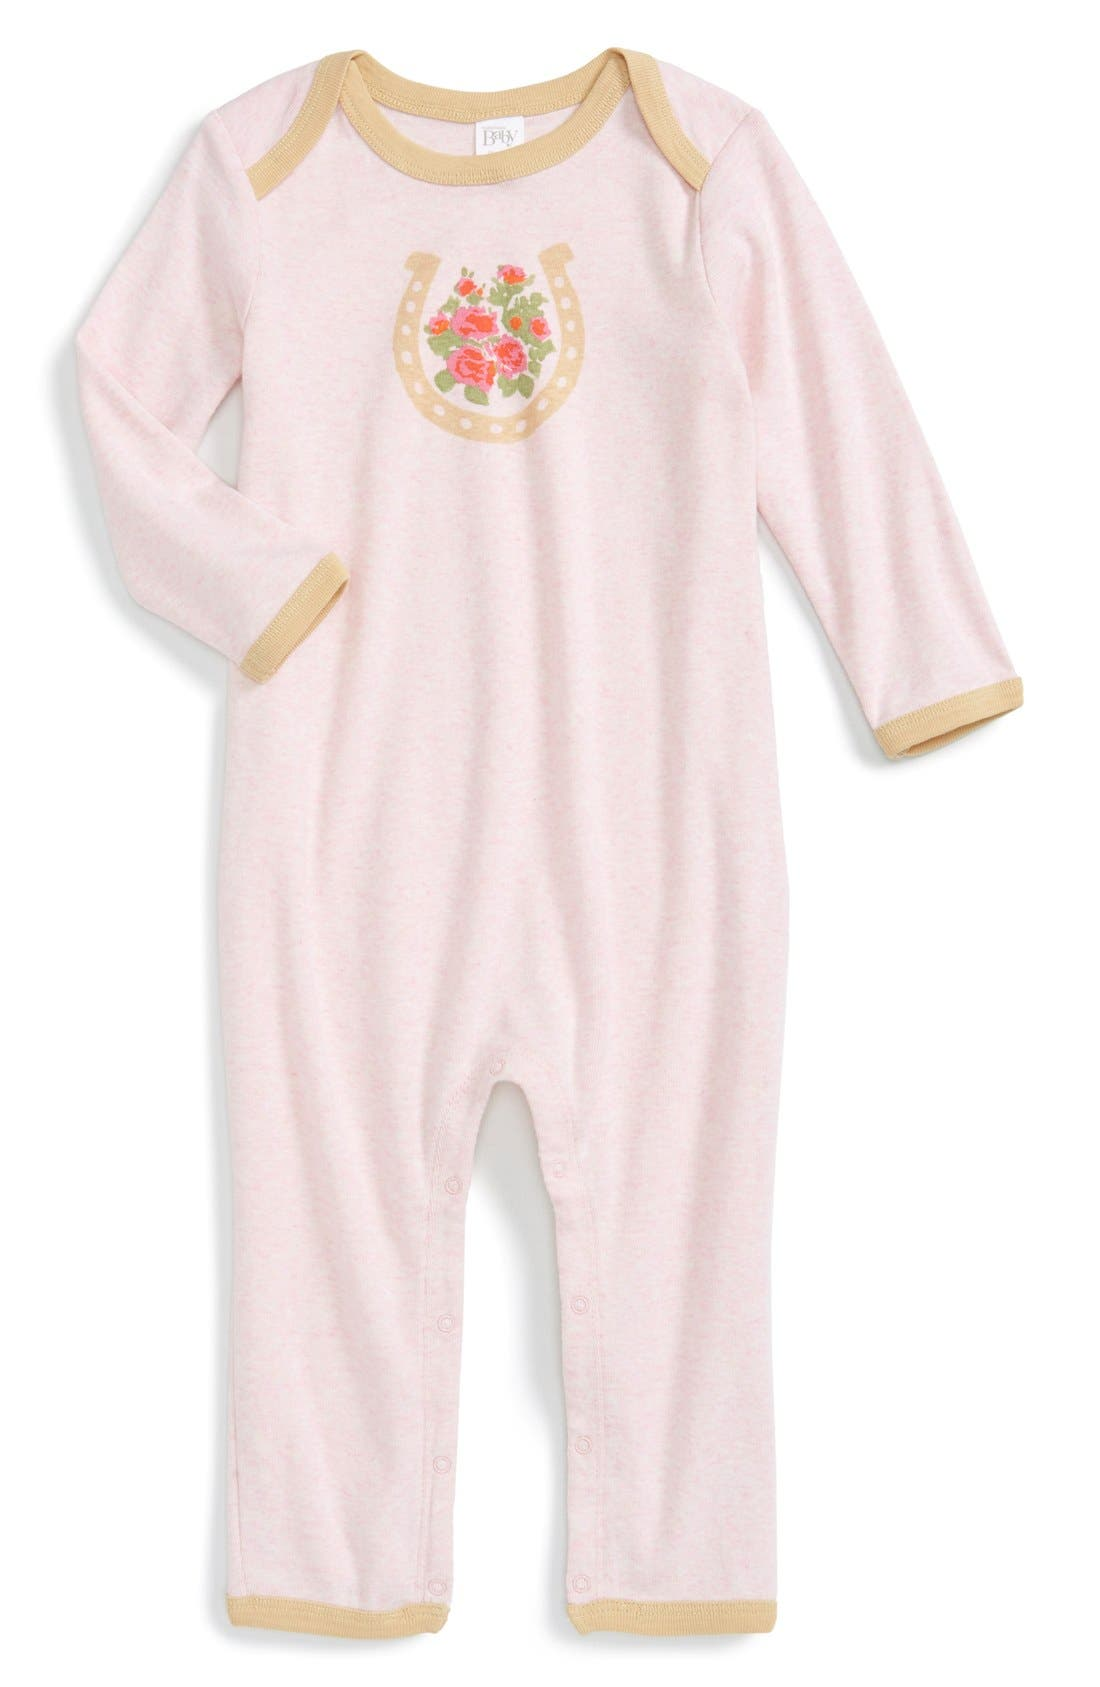 Main Image - Nordstrom Baby Graphic Romper (Baby Girls)